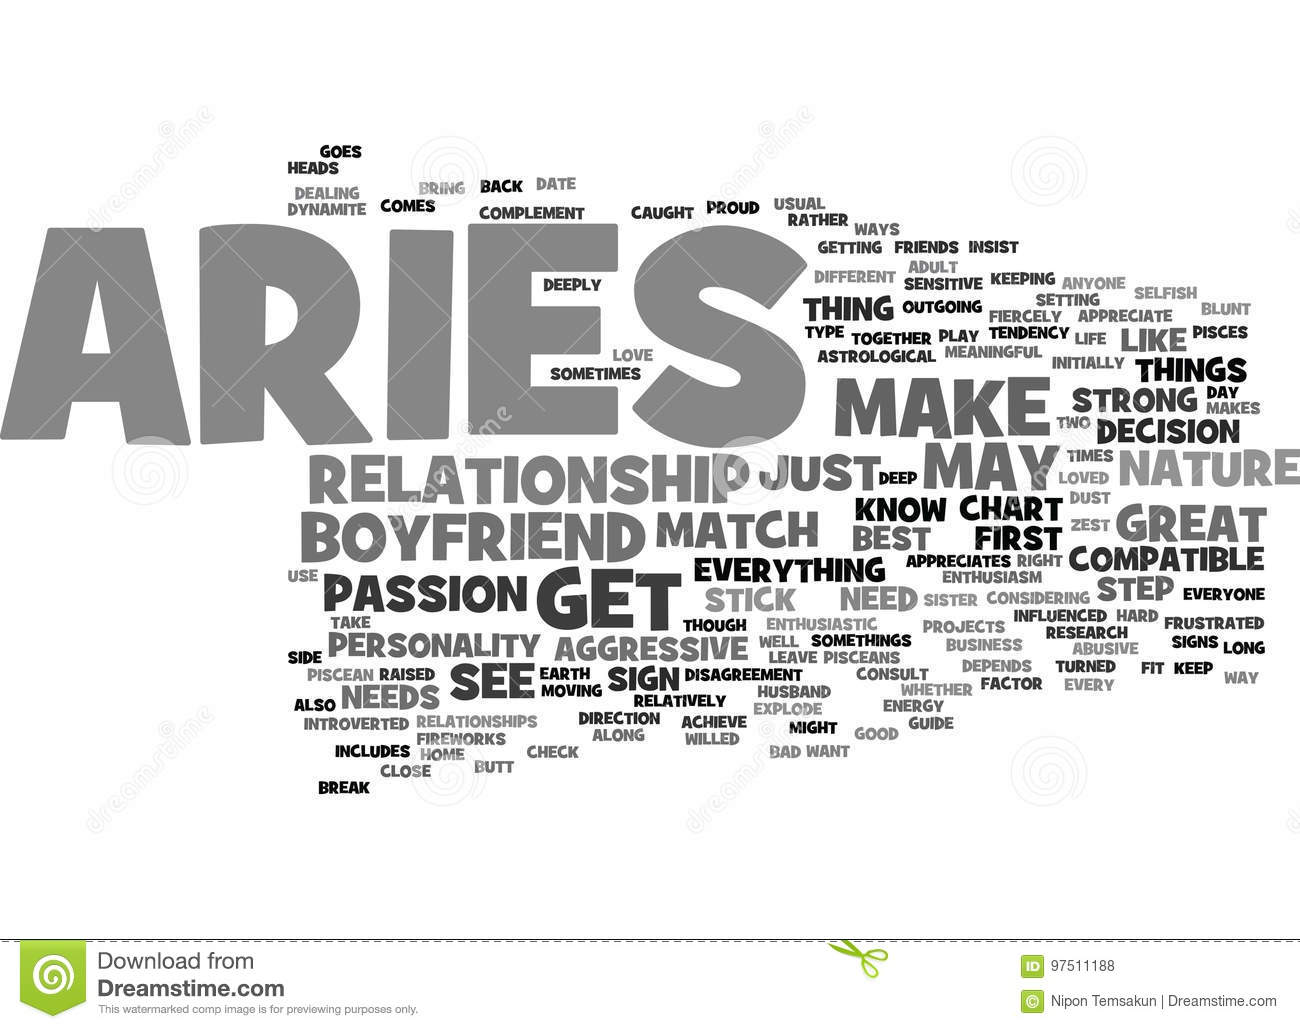 Aries As A Boyfriend Your Sign May Play A Factor Word Cloud Concept